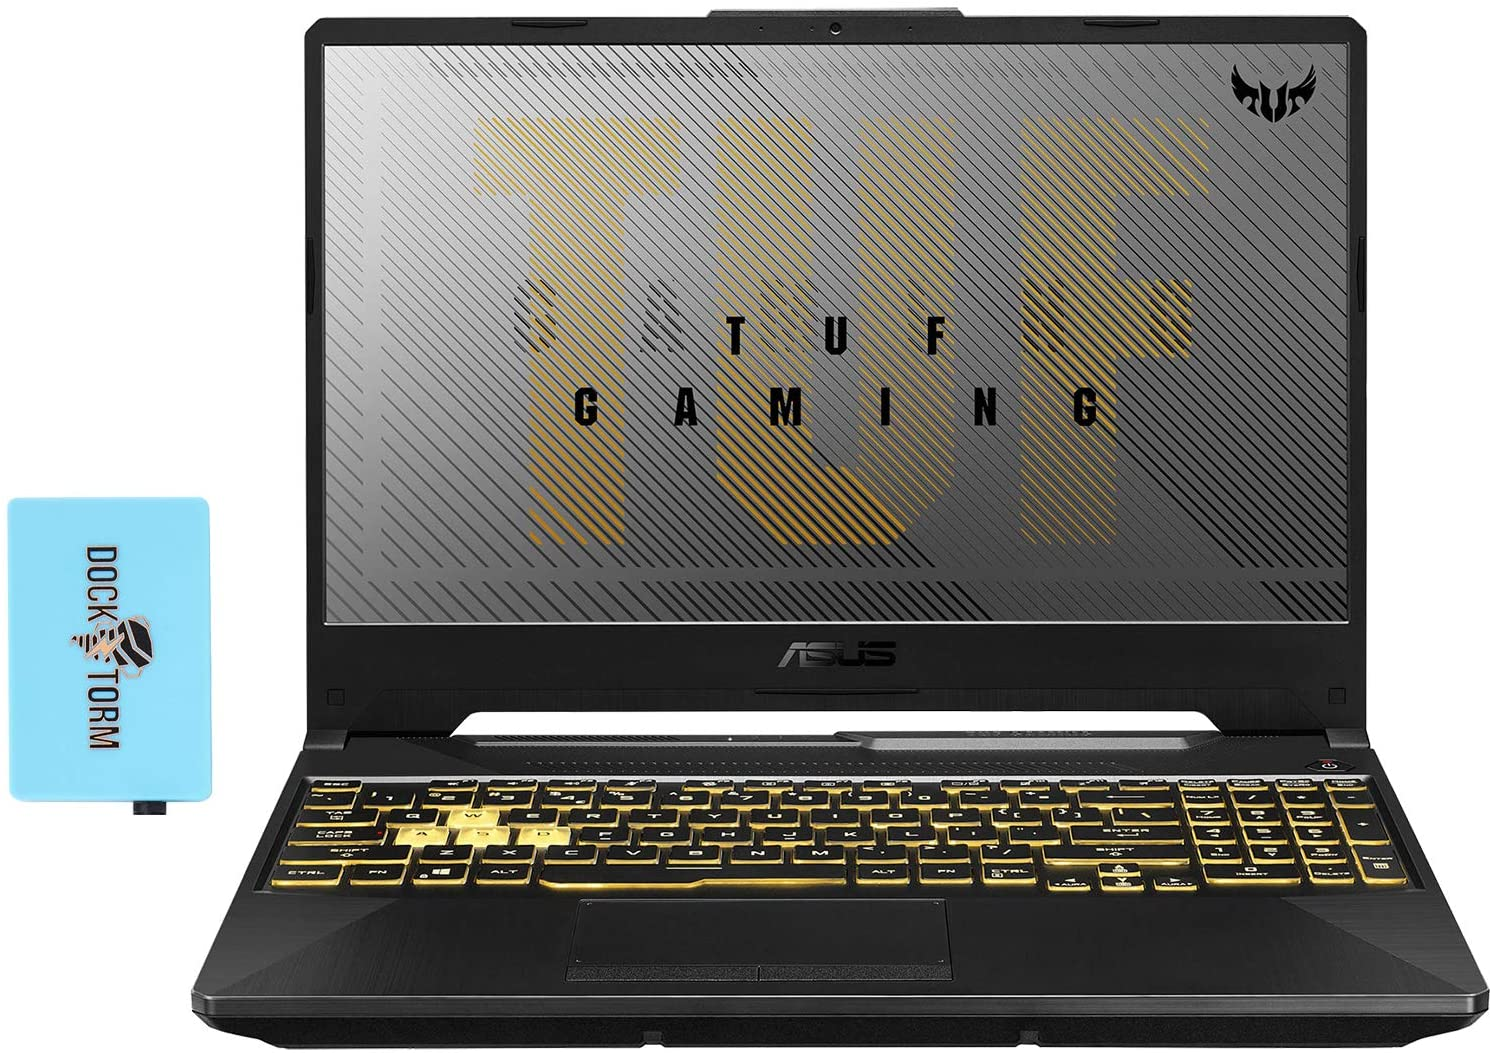 ASUS TUF A15 Gaming and Entertainment Laptop (AMD Ryzen 7 4800H 8-Core, 16GB RAM, 512GB PCIe SSD, GTX 1650 Ti, 15.6